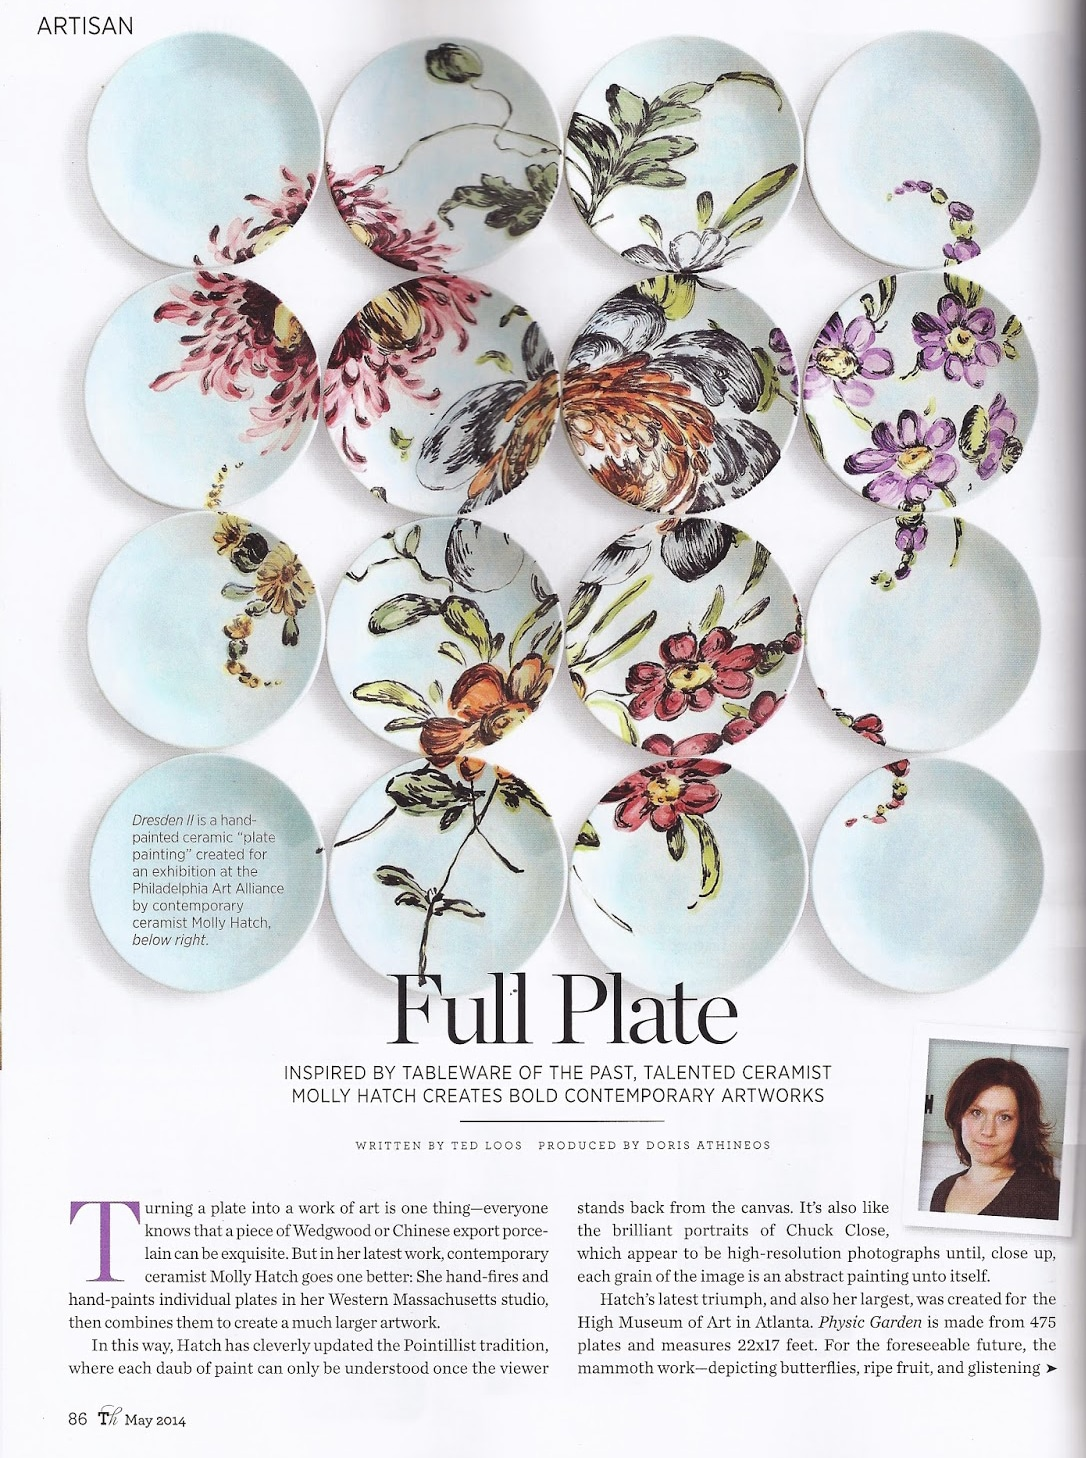 "Dresden II is a hand-painted ceramic ""plate painting"" created for an exhibition at the Philadelphia Art Alliance by contemporary ceramist Molly Hatch, below right."